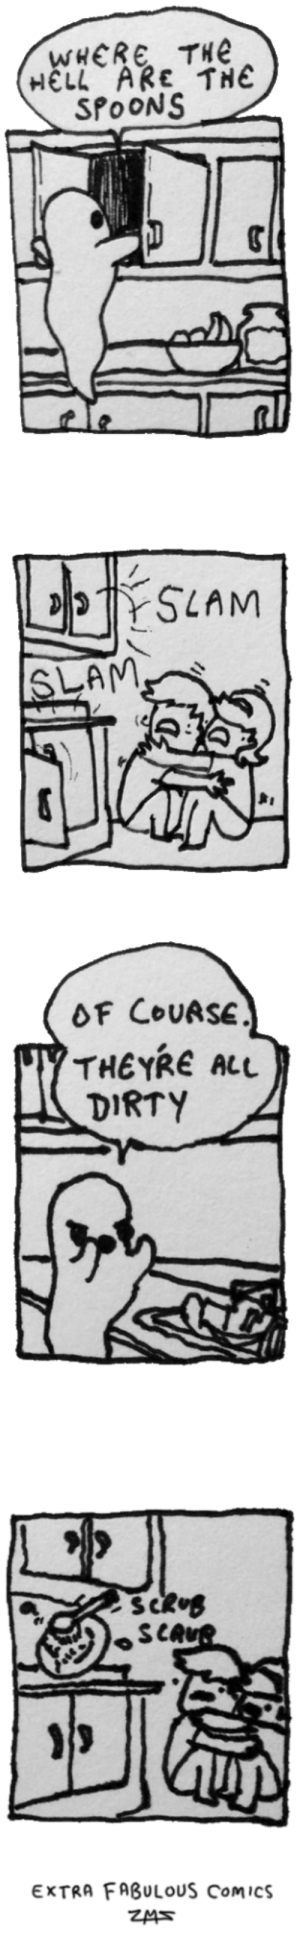 Omg, Tumblr, and Dirty: WHERE TH  HELL ARE THE  SPOONS  SLAM  SLAM  OF COUASE  THEYRE ALU  DIRTY  sca  EXTRA FABULOUS Comics  ZMS omg-images:angry ghost